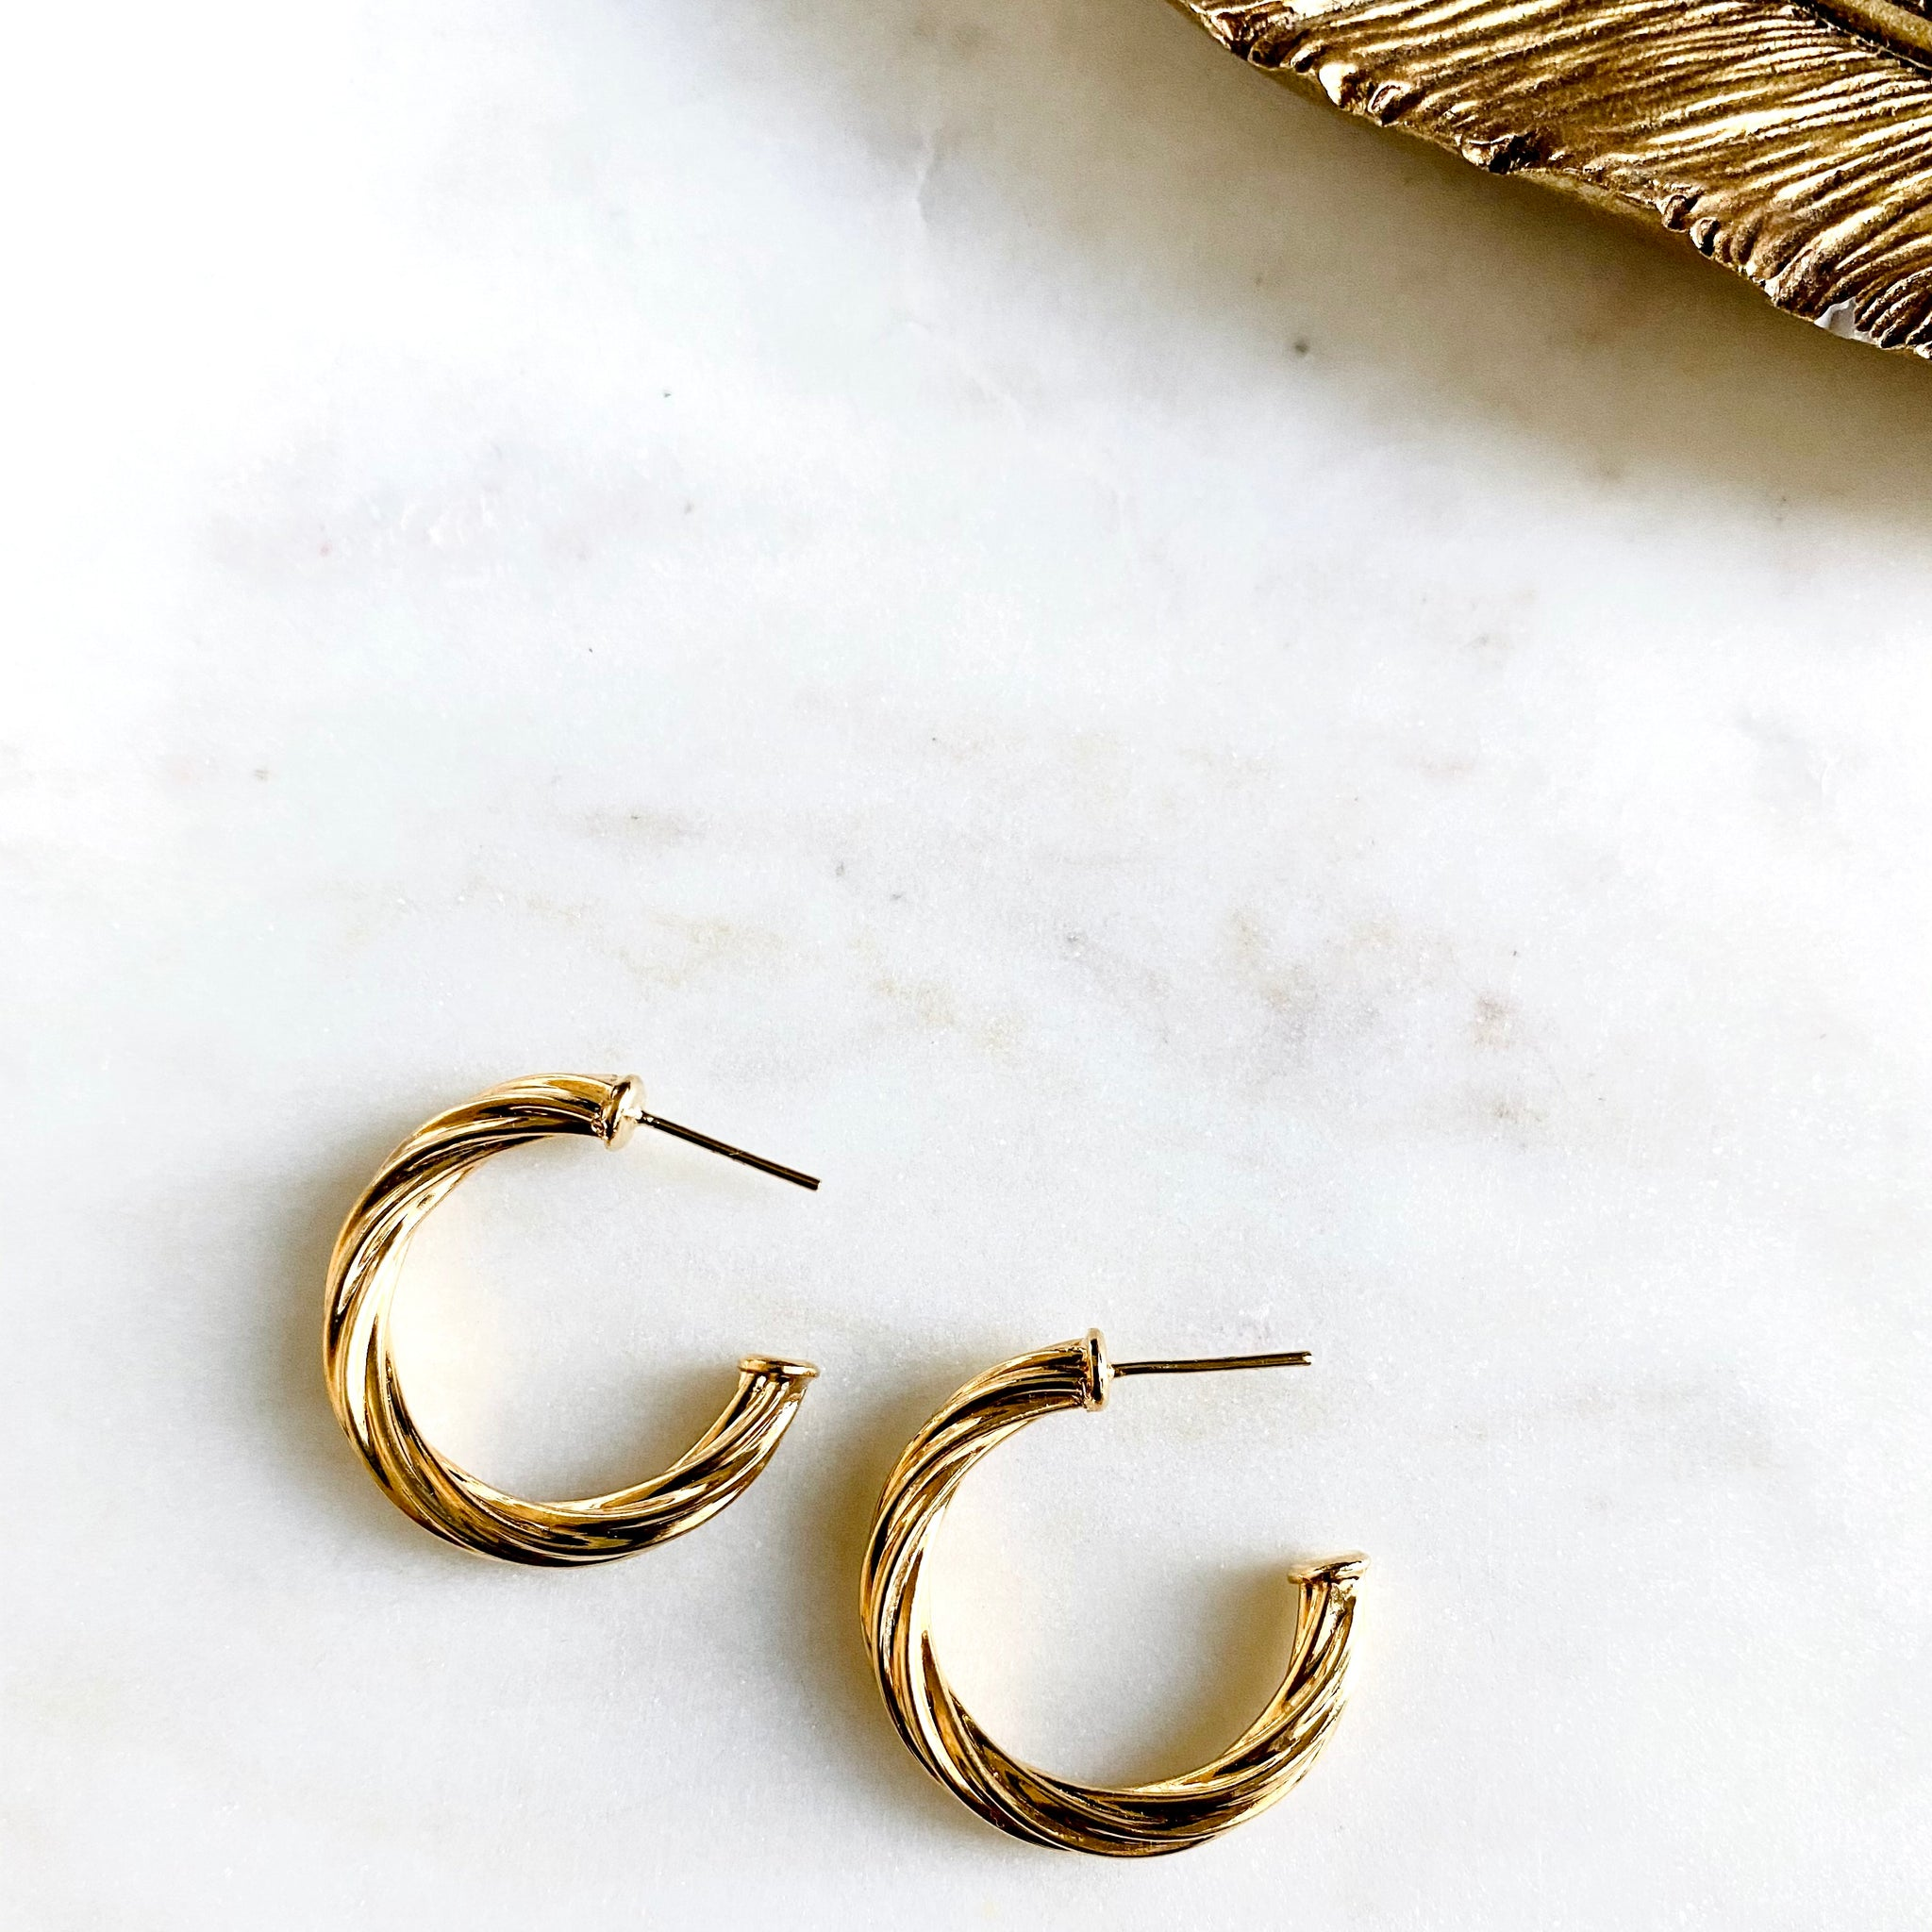 18K Gold Filled Textured Thick Hoops